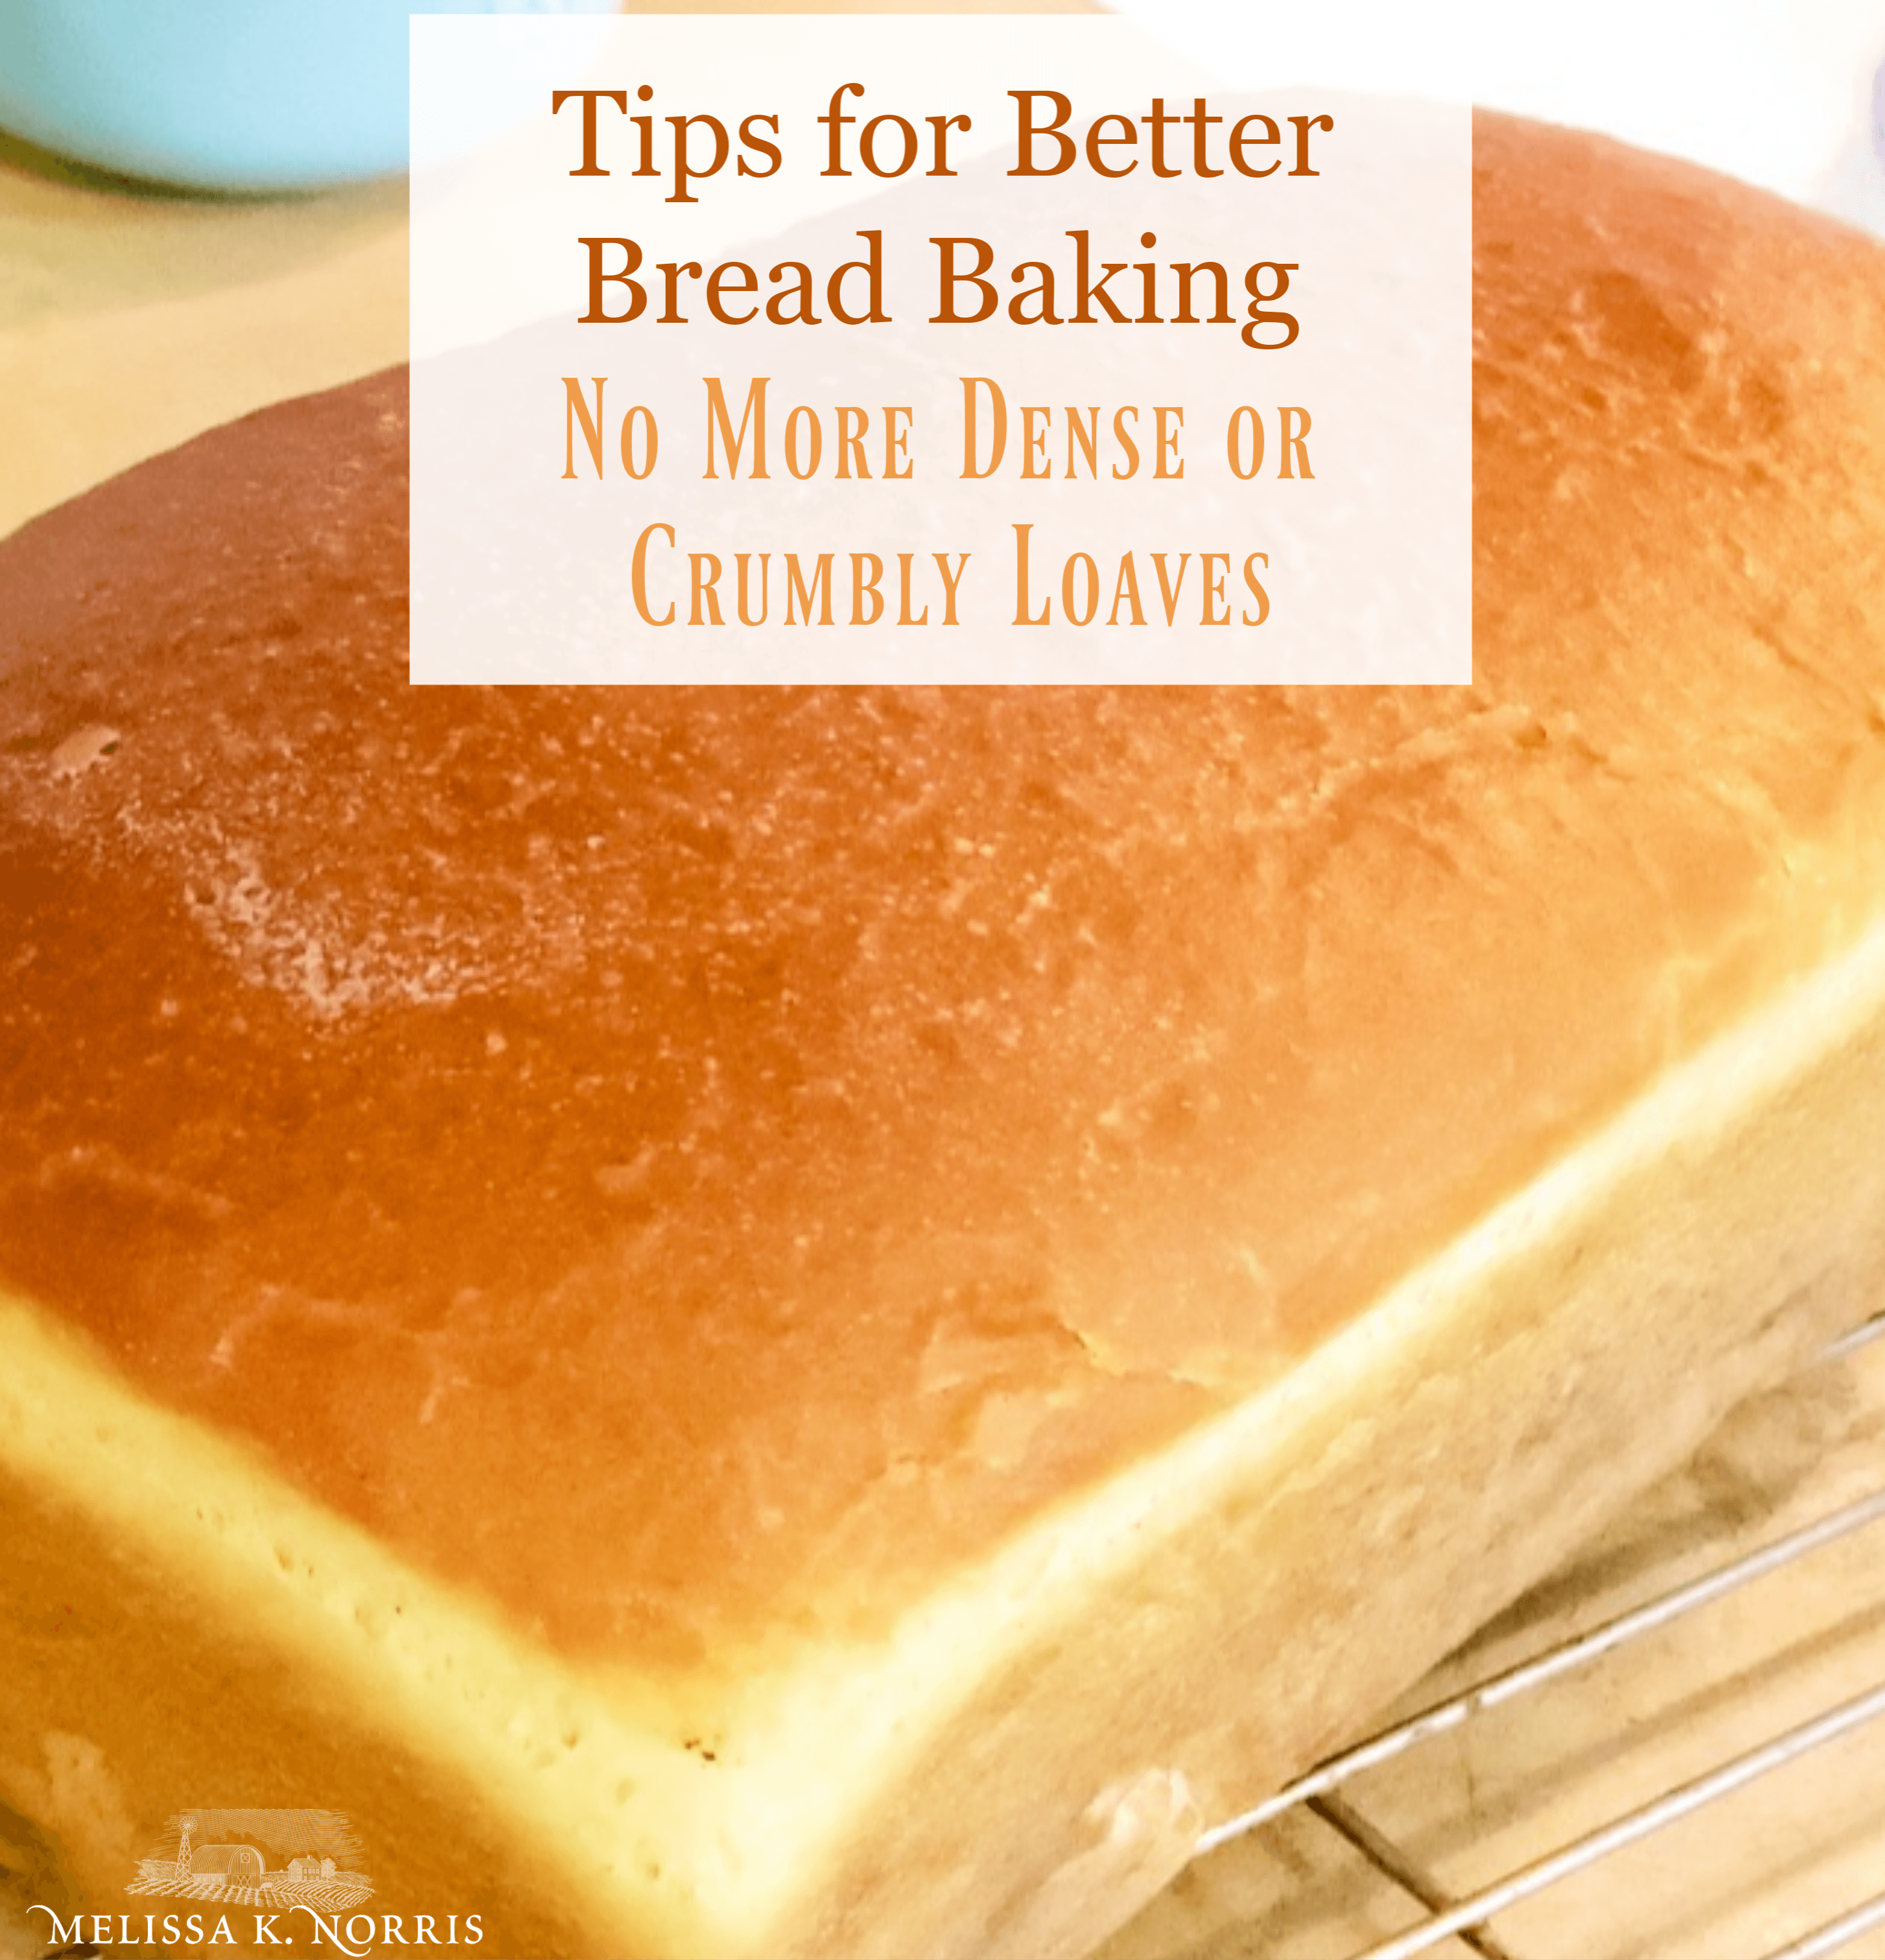 tips for better bread baking no more dense or crumbly loaves loaf of homemade sandwich bread